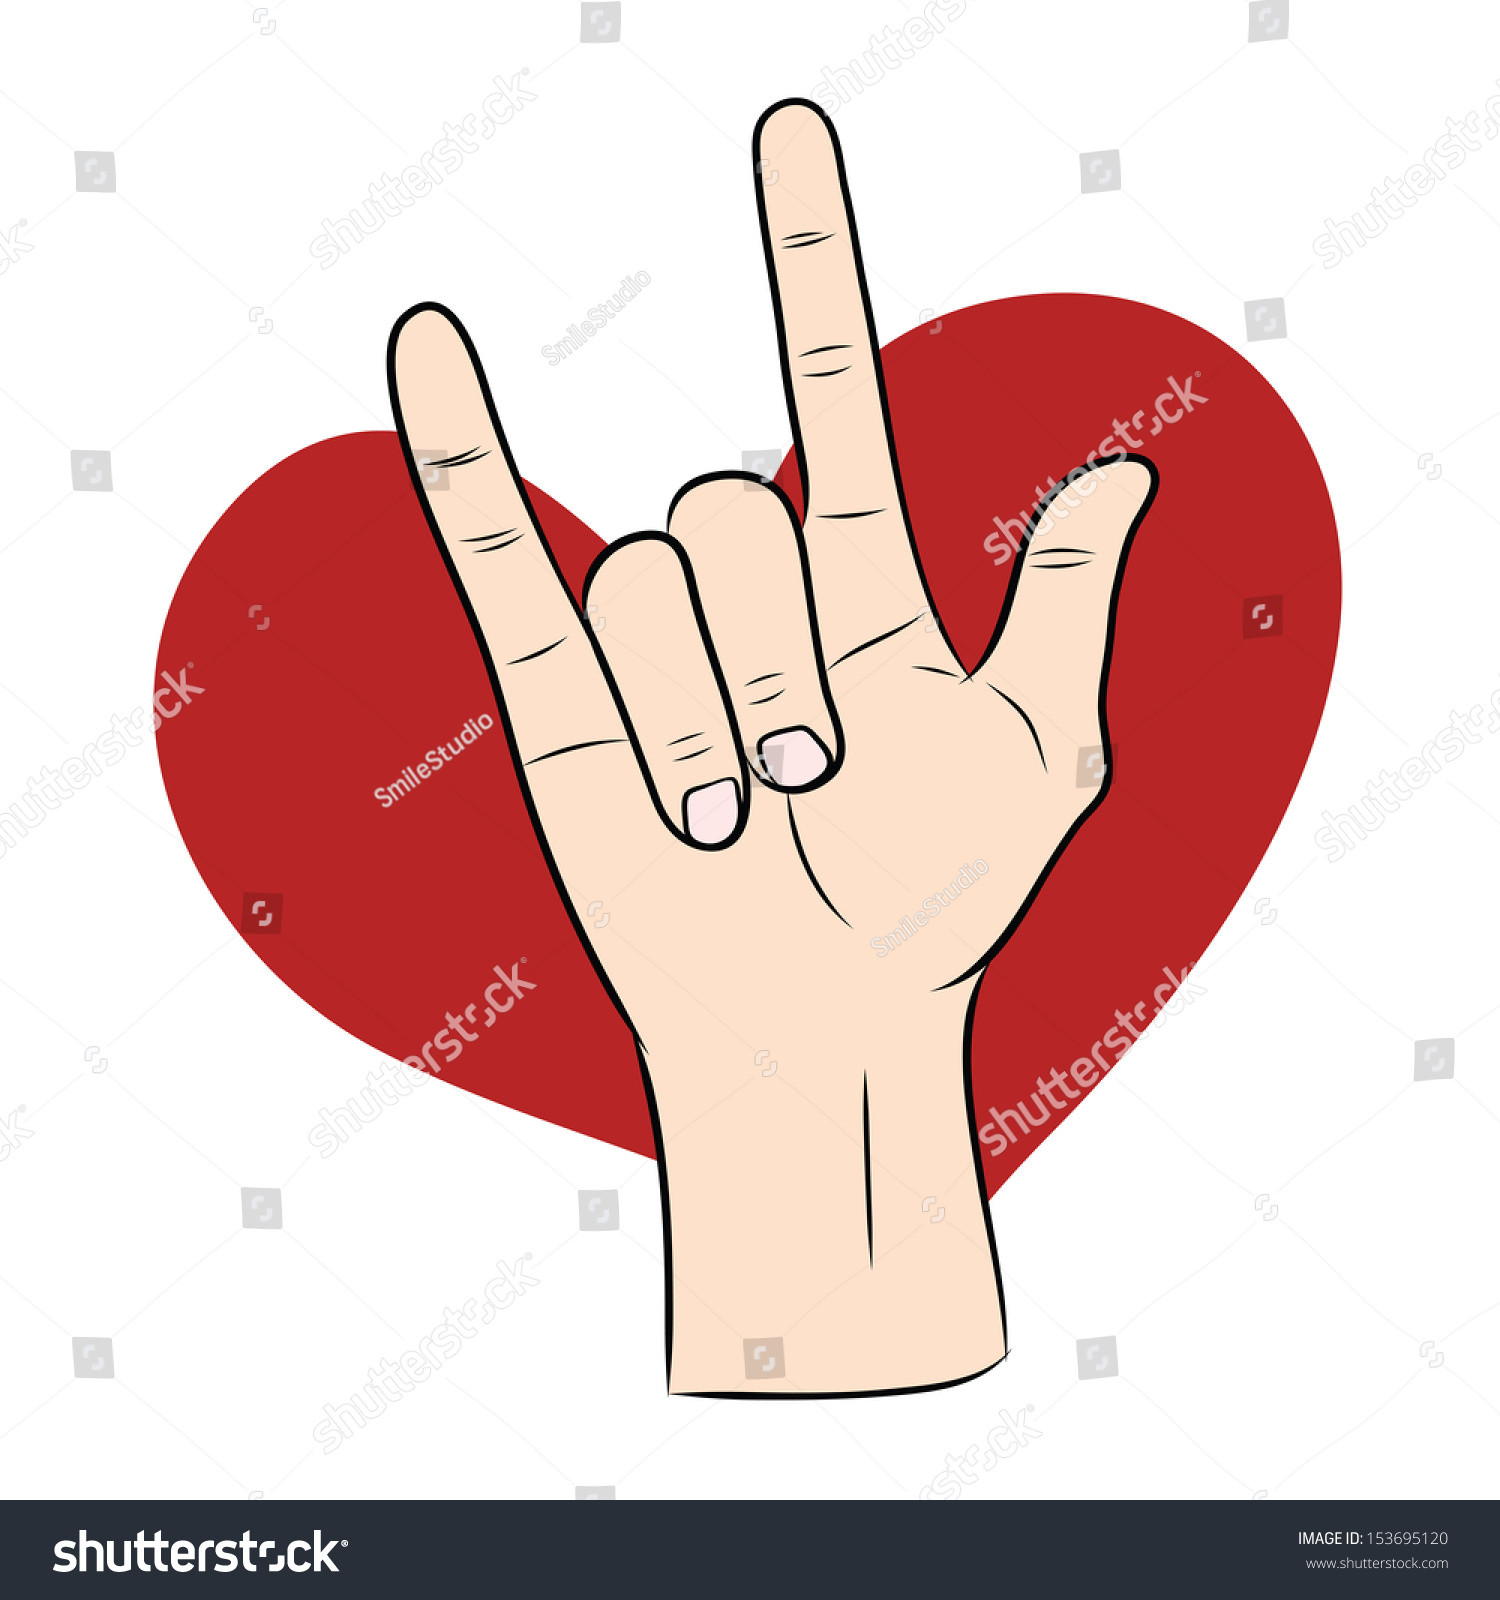 Red Heart with Love Luxury Love Hand Sign Red Heart Stock Vector Shutterstock Of Awesome 41 Ideas Red Heart with Love